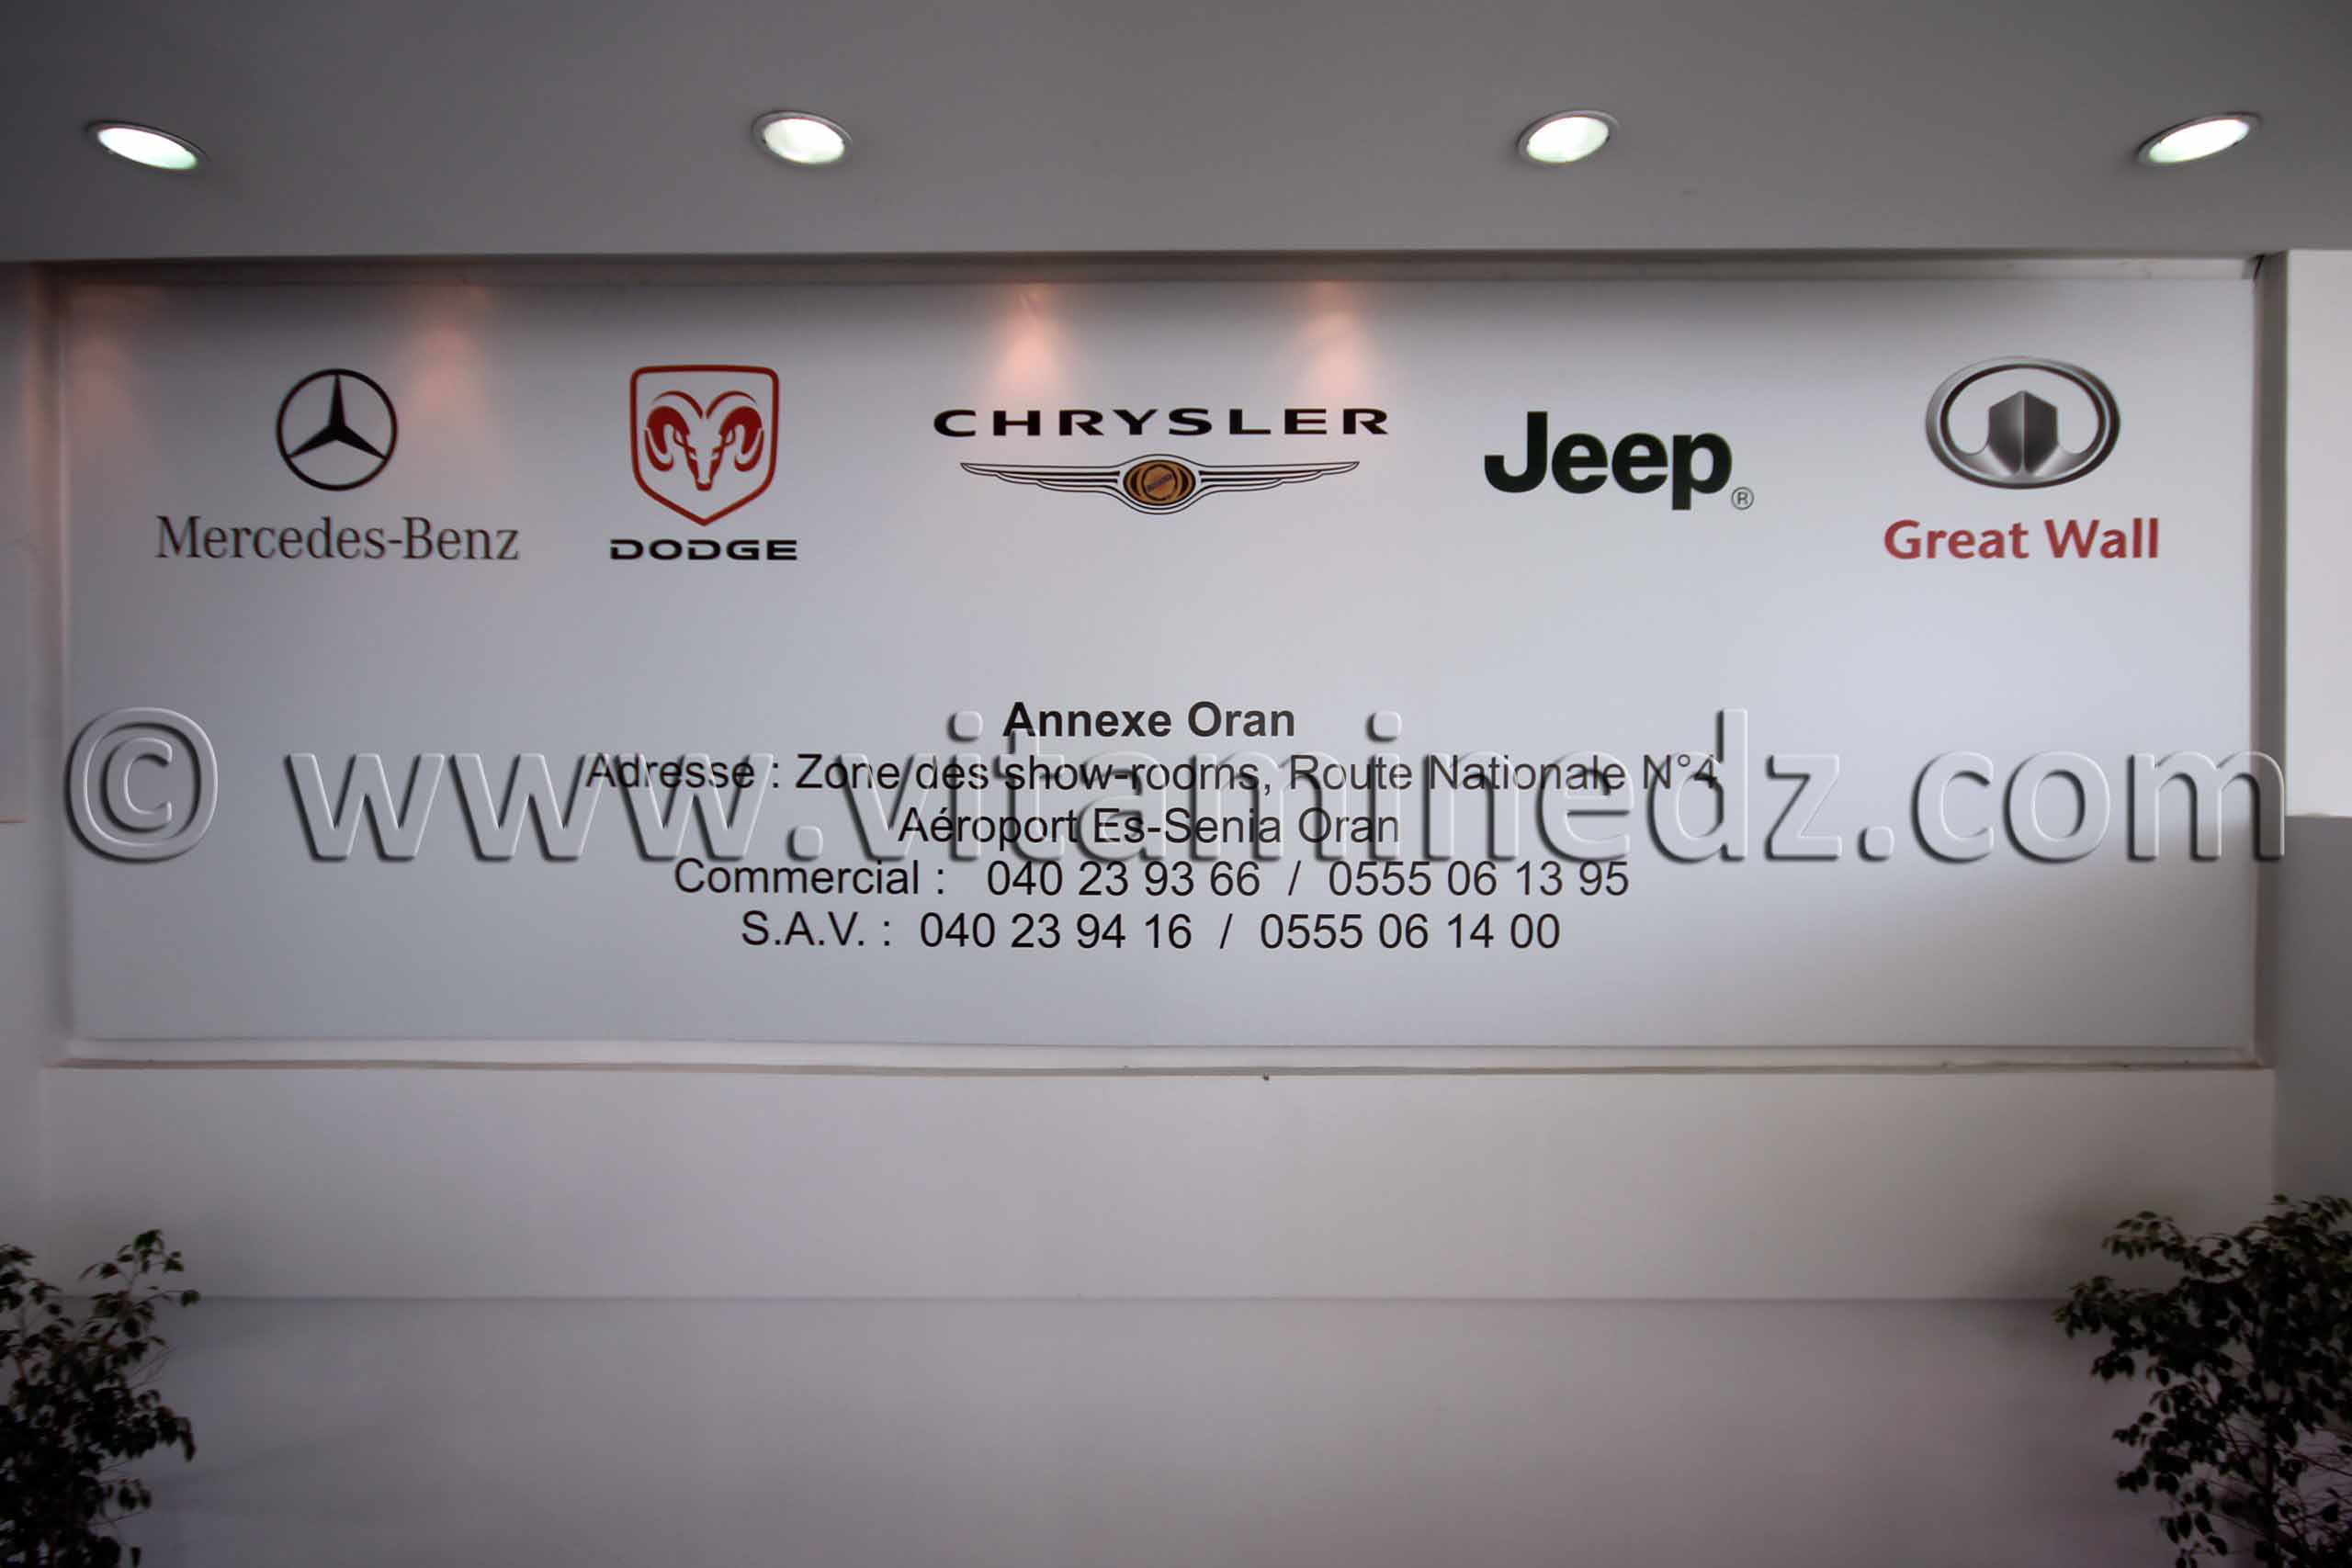 Maison Mercedes Benz, Dodge, Chrysler, Jeep et Great Wall, Auto, Concessionnaire à Oran